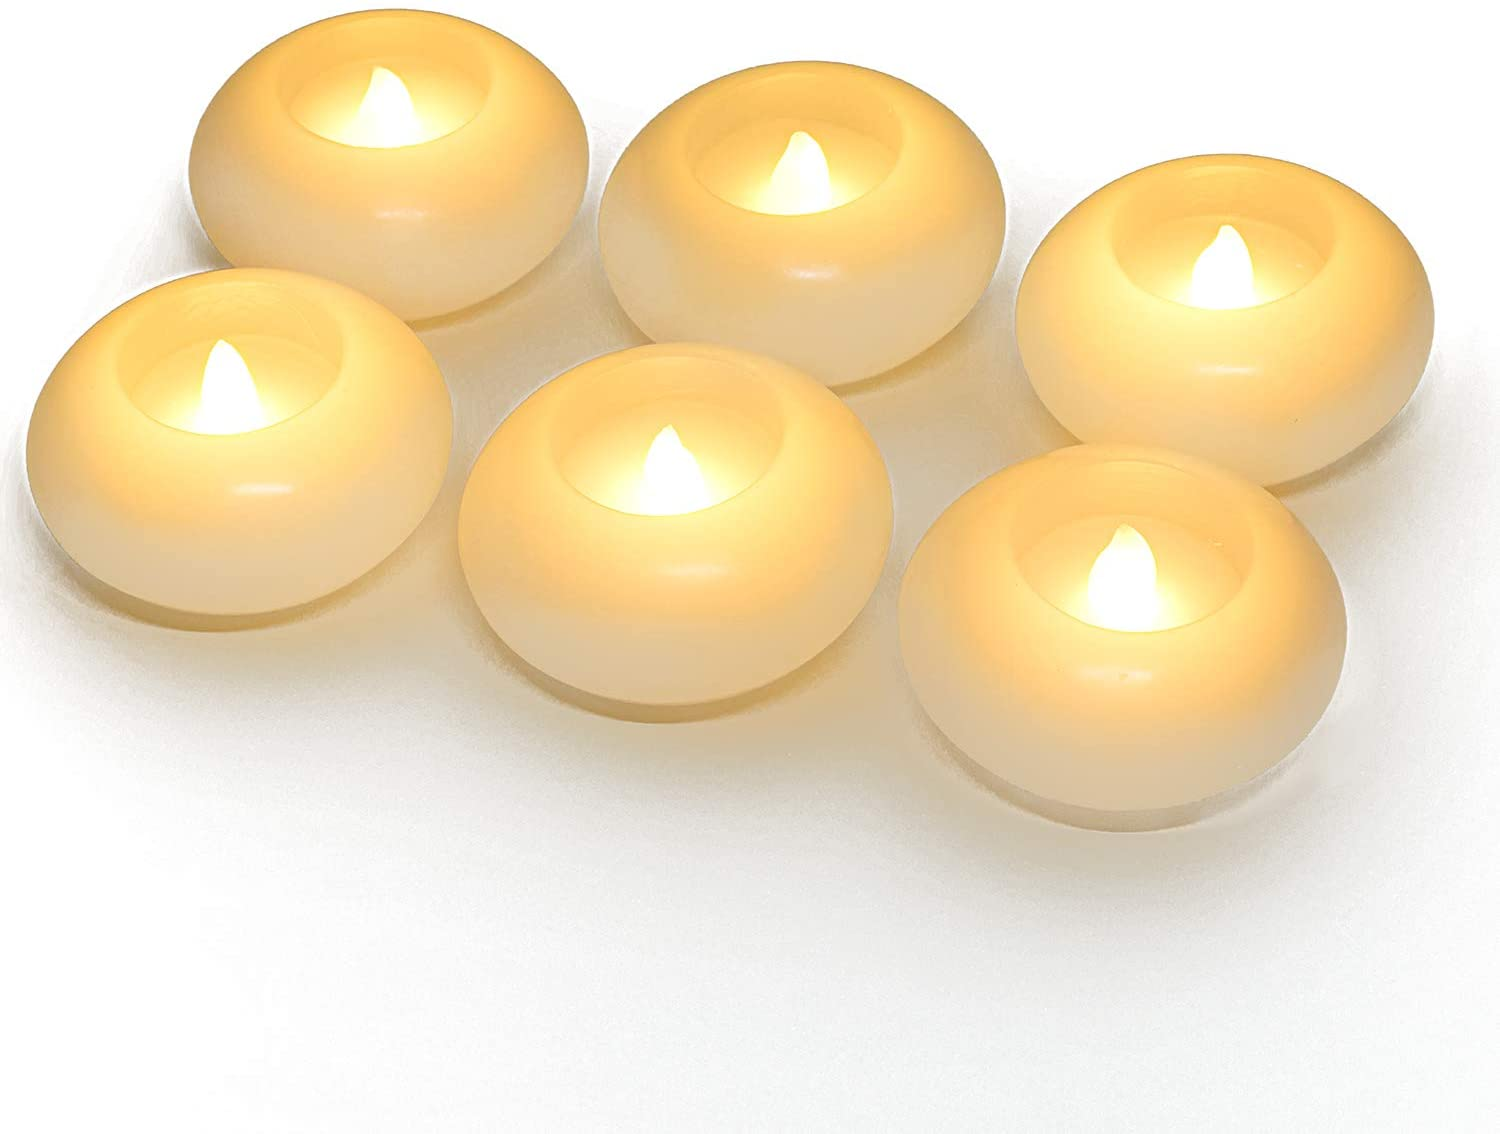 Homemory 3 Inch Minneapolis Mall Flameless Floating White Detroit Mall Wax Hour Candles 150